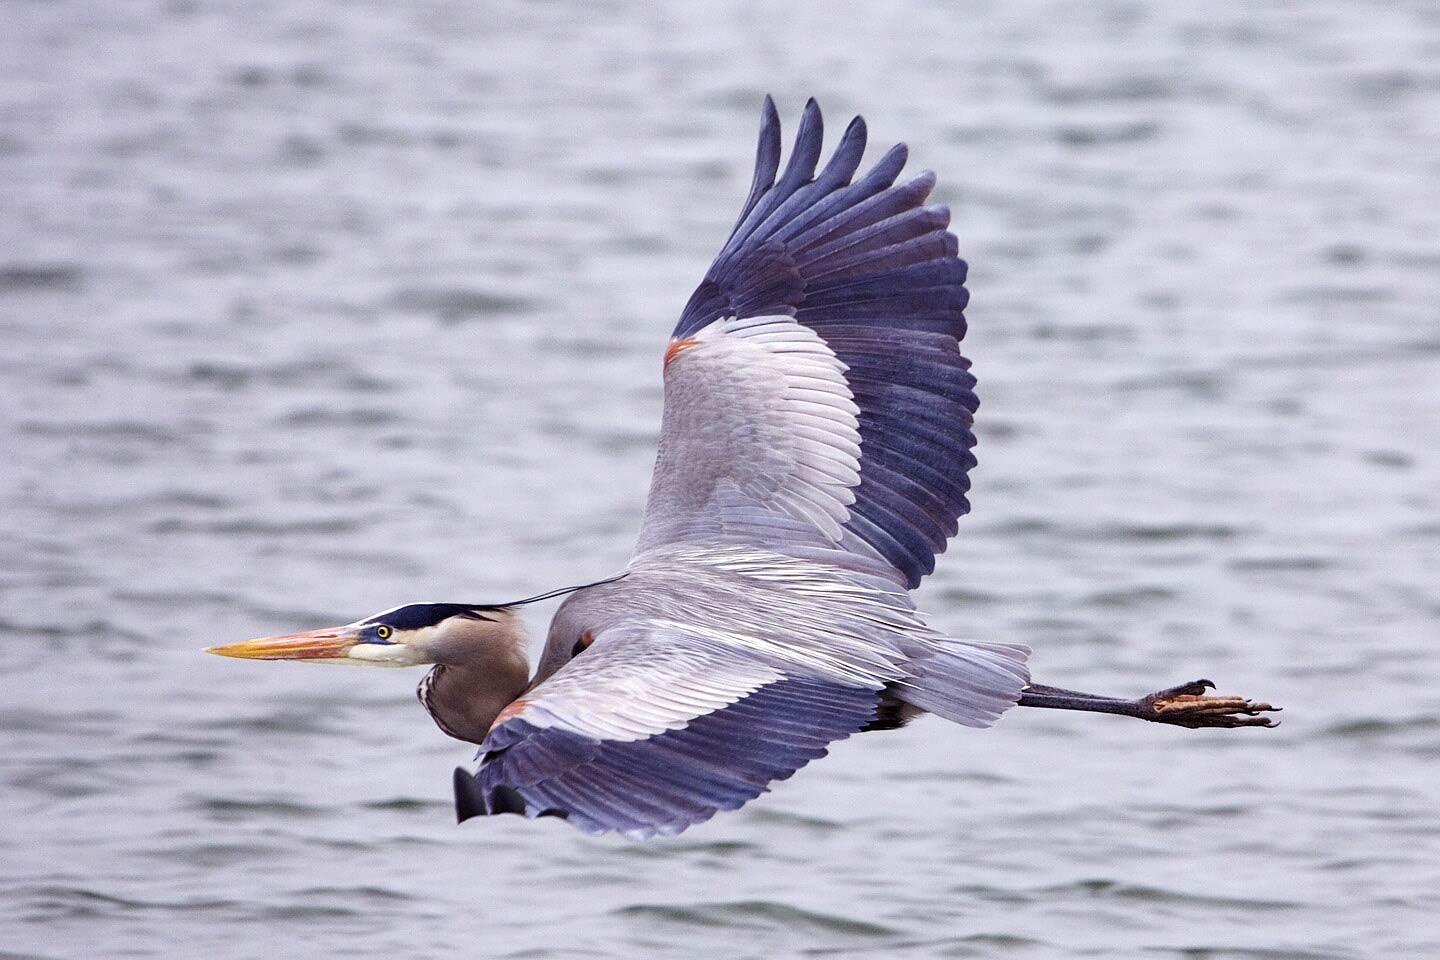 free Great Blue Heron wallpaper wallpapers download